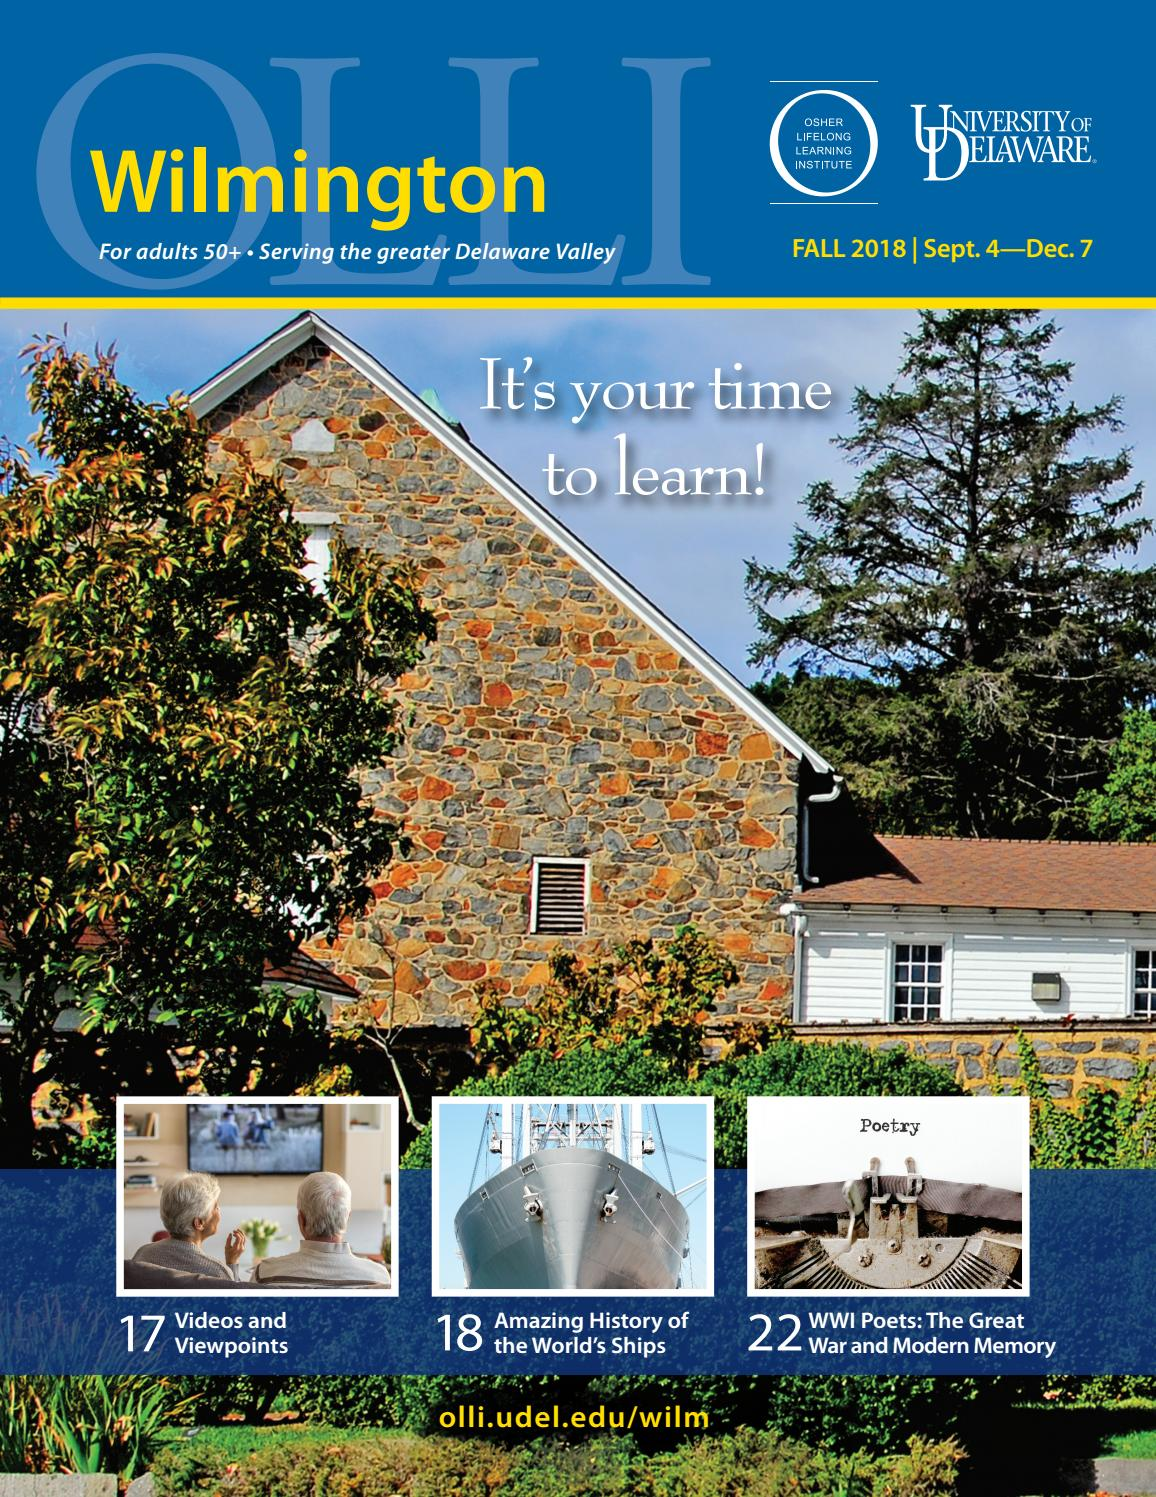 Casa & Co Milazzo ud osher wilmington catalog, fall 2018 by university of